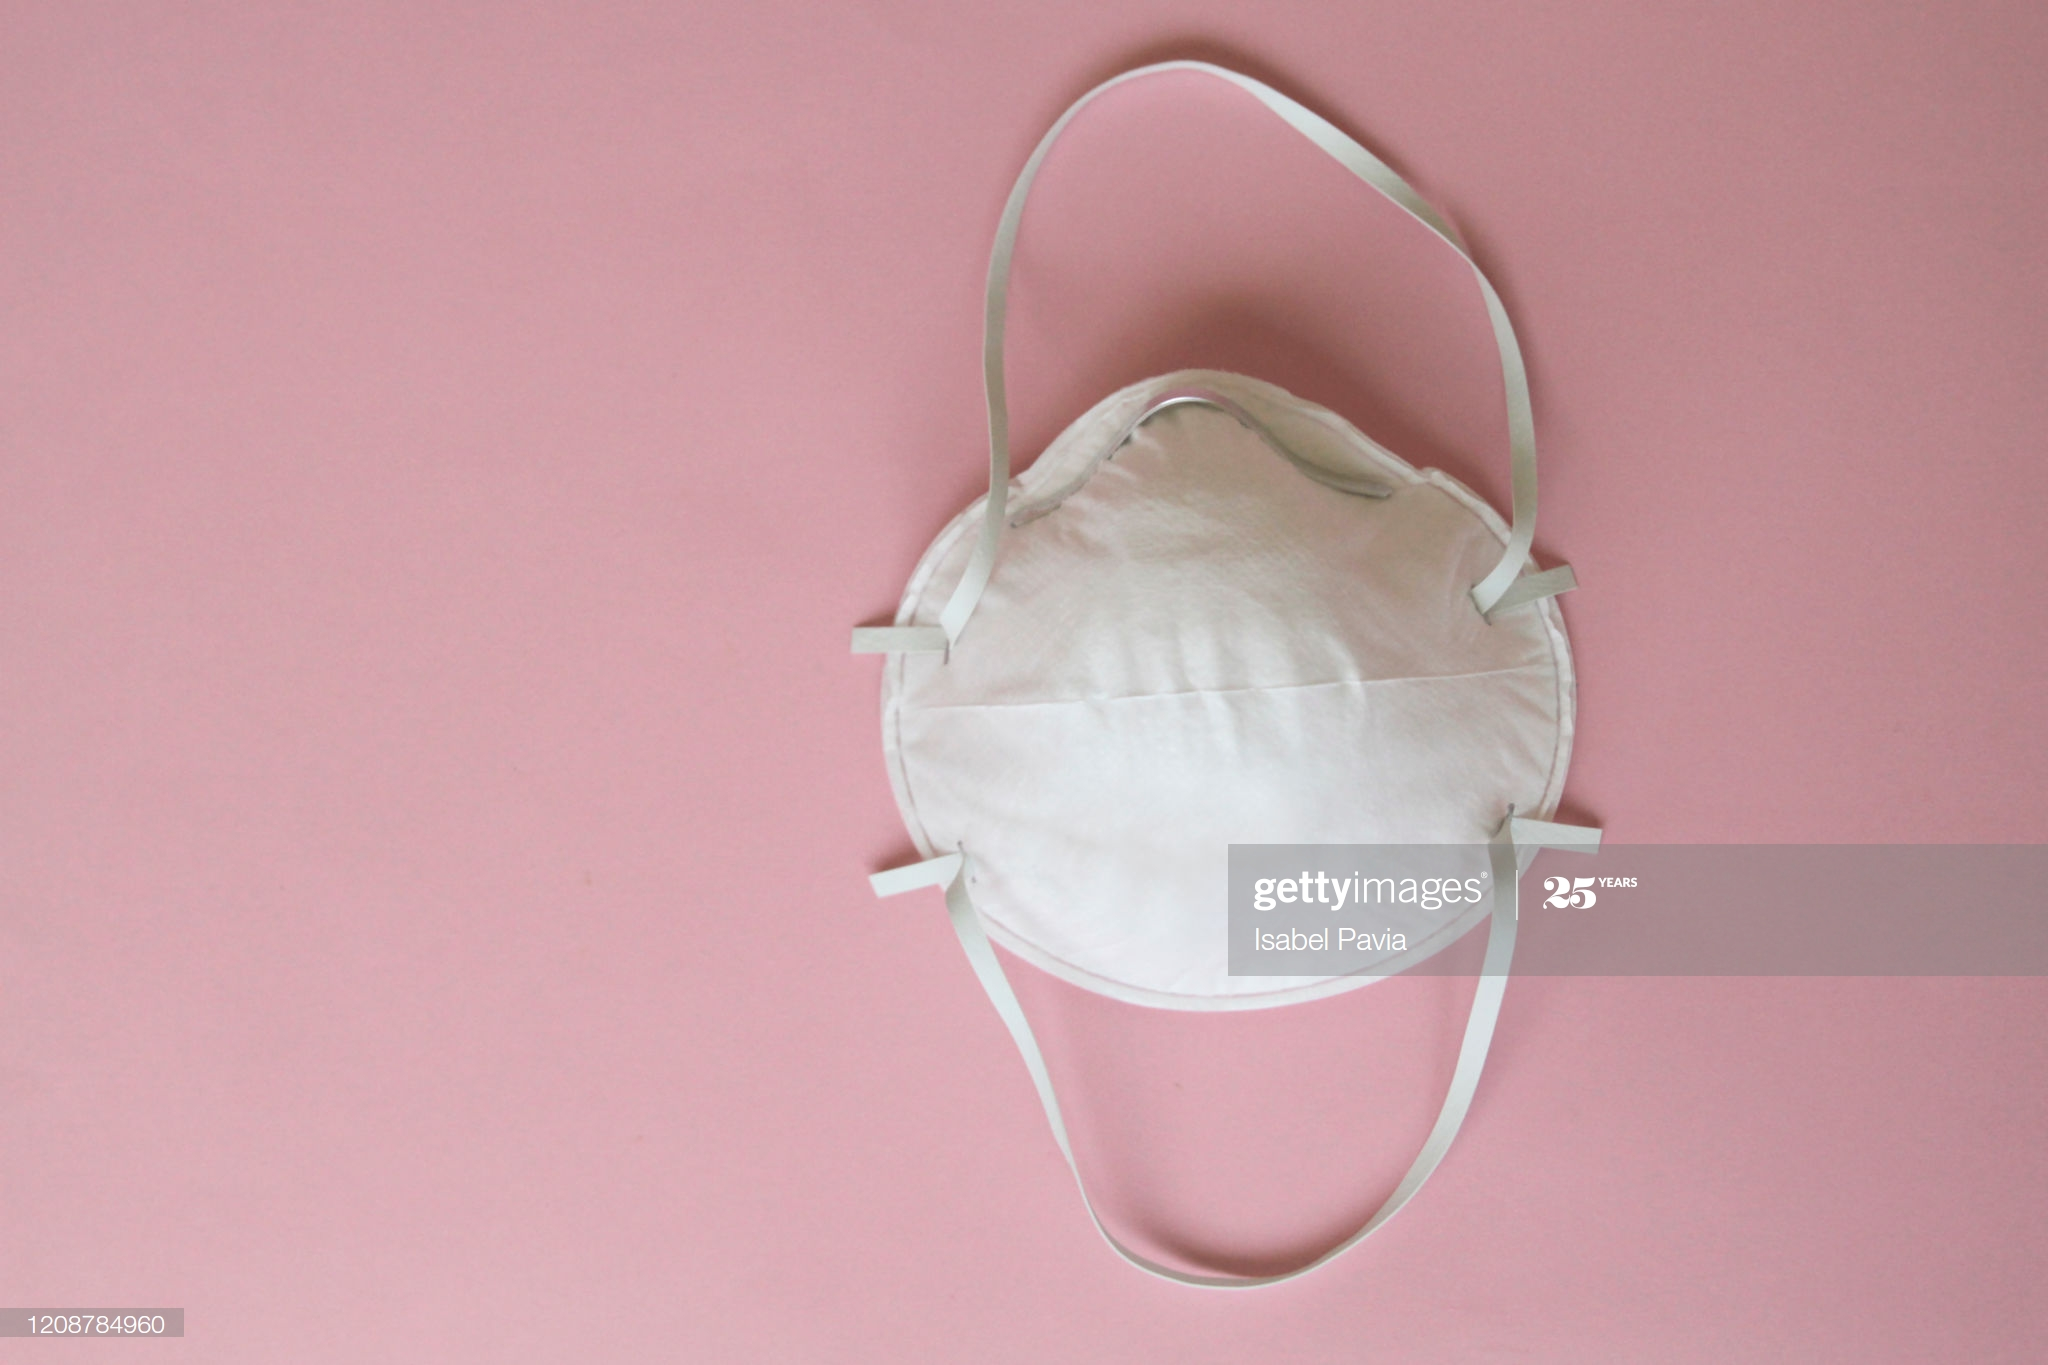 Face Mask On Pink Background